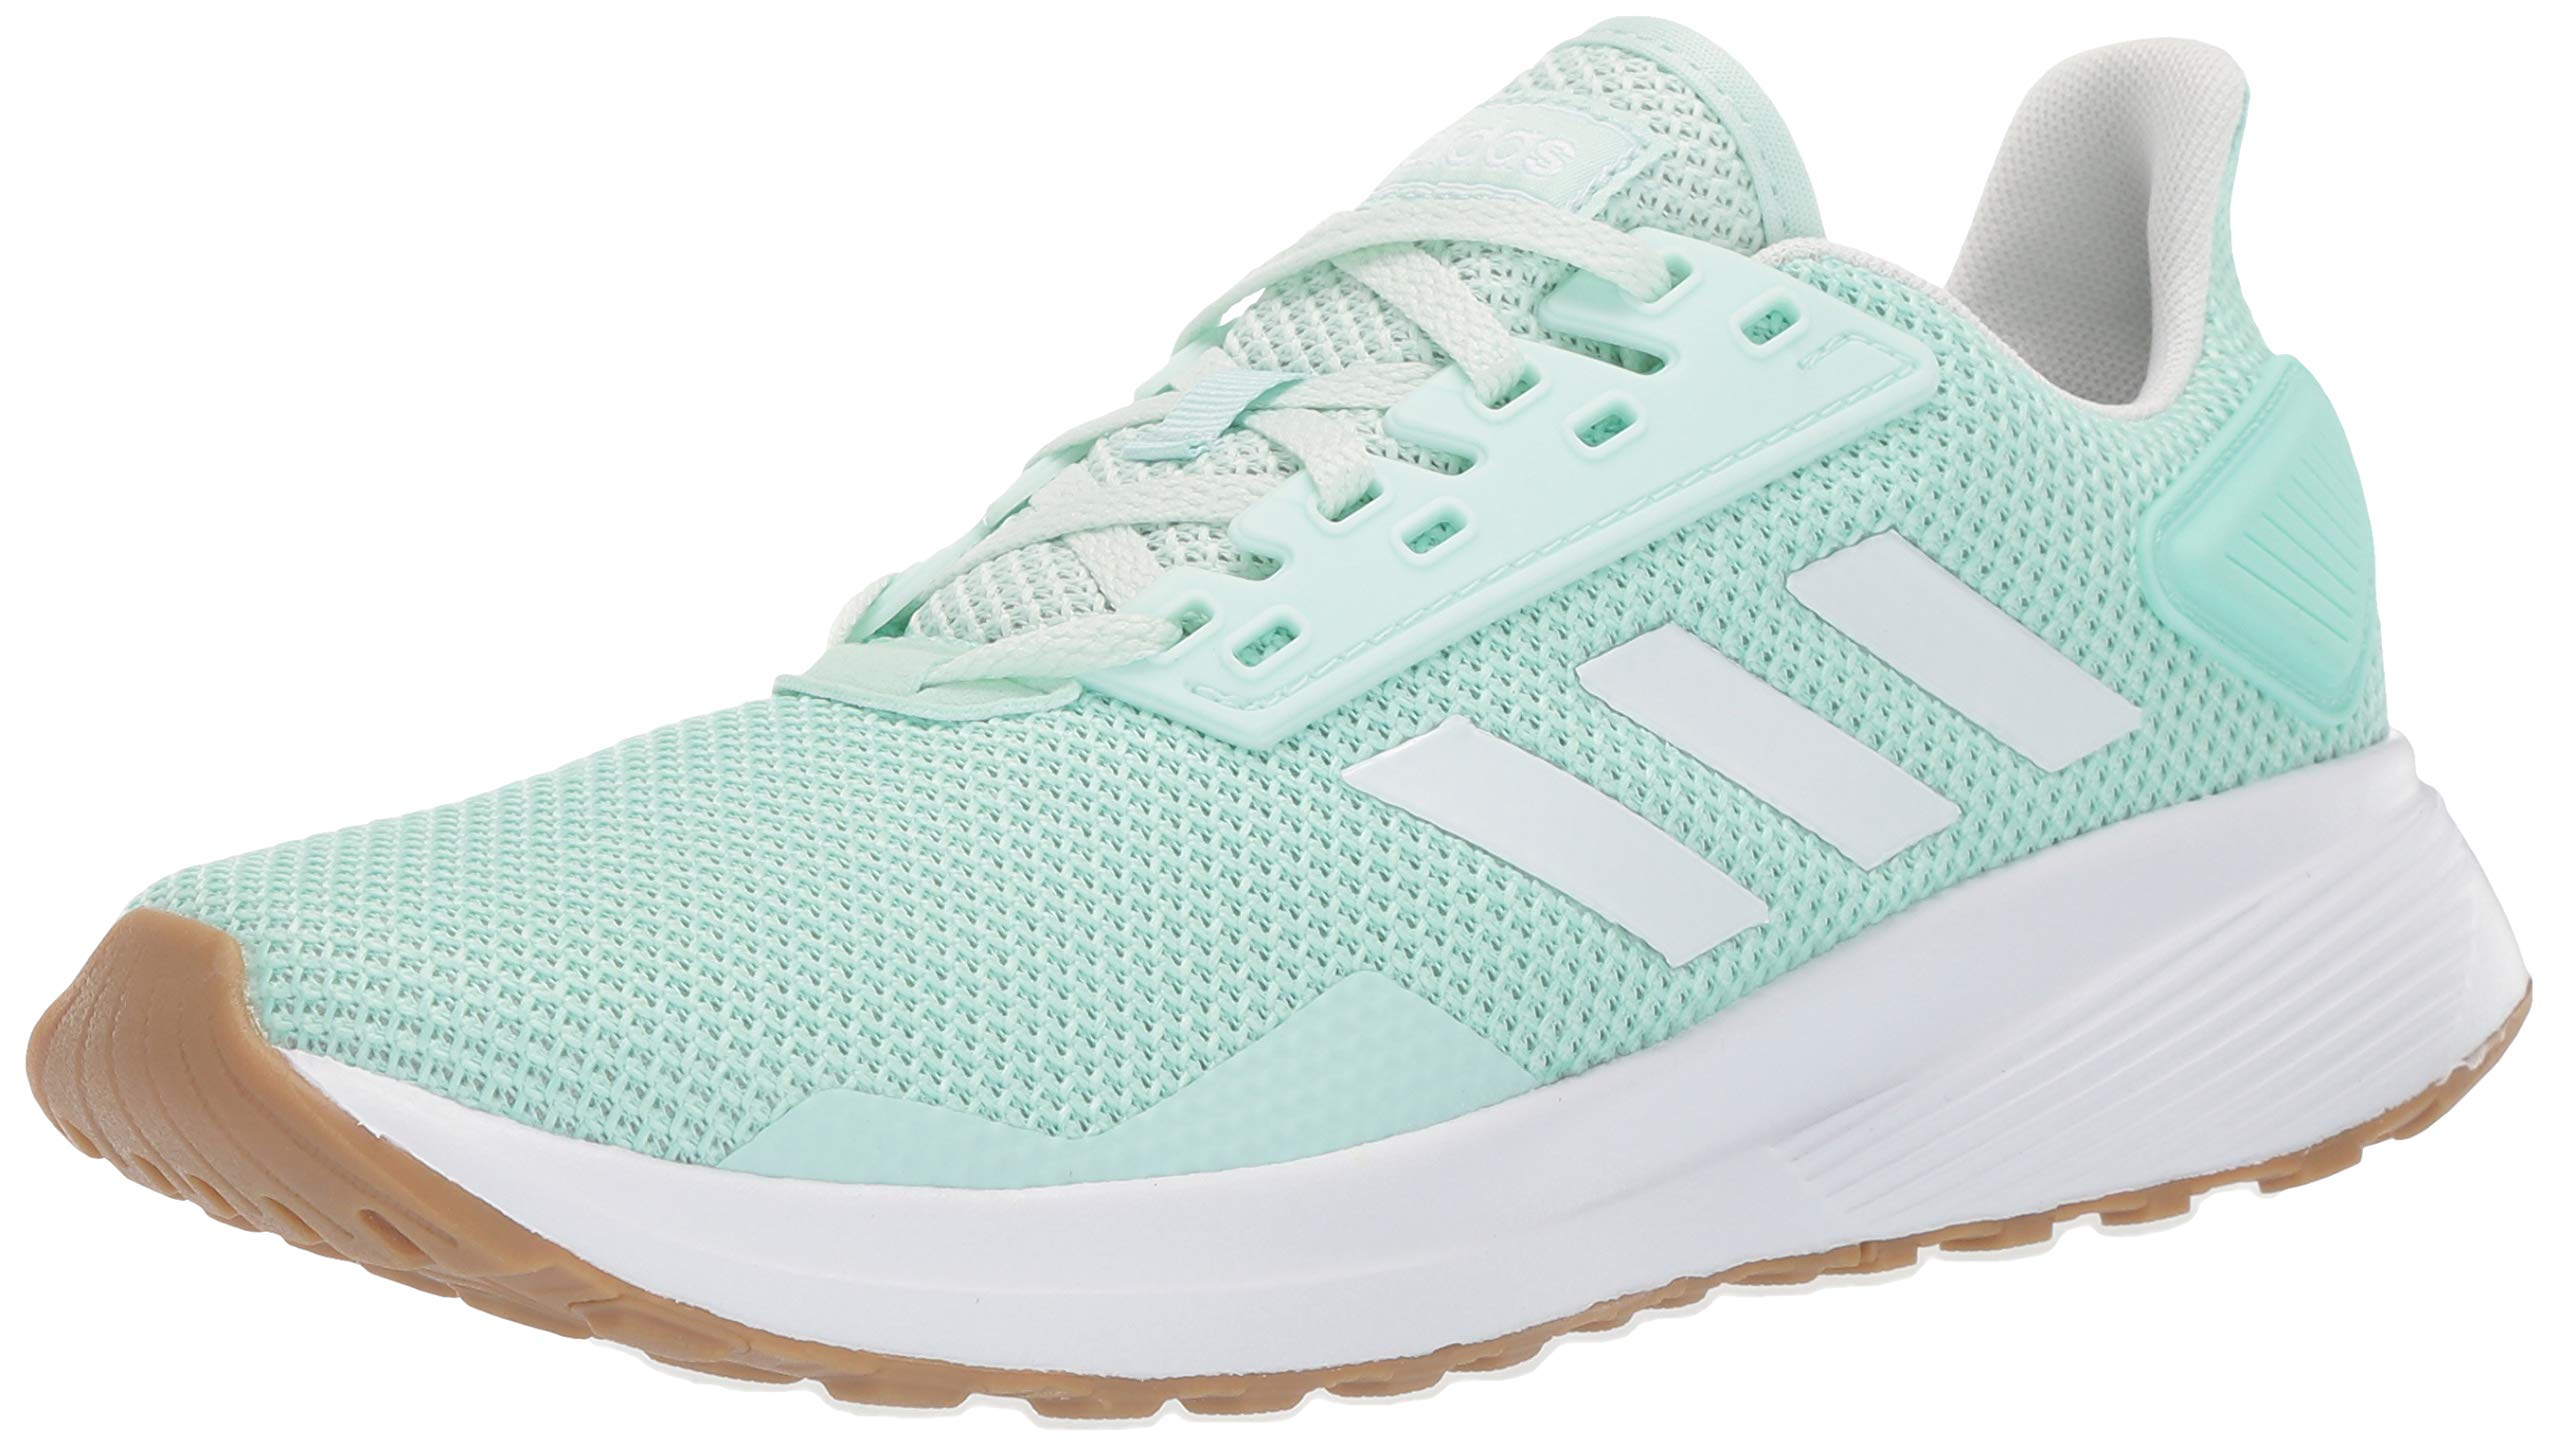 adidas Women's Duramo 9 Running Shoe, Clear White/ice Mint, 11 M US by adidas